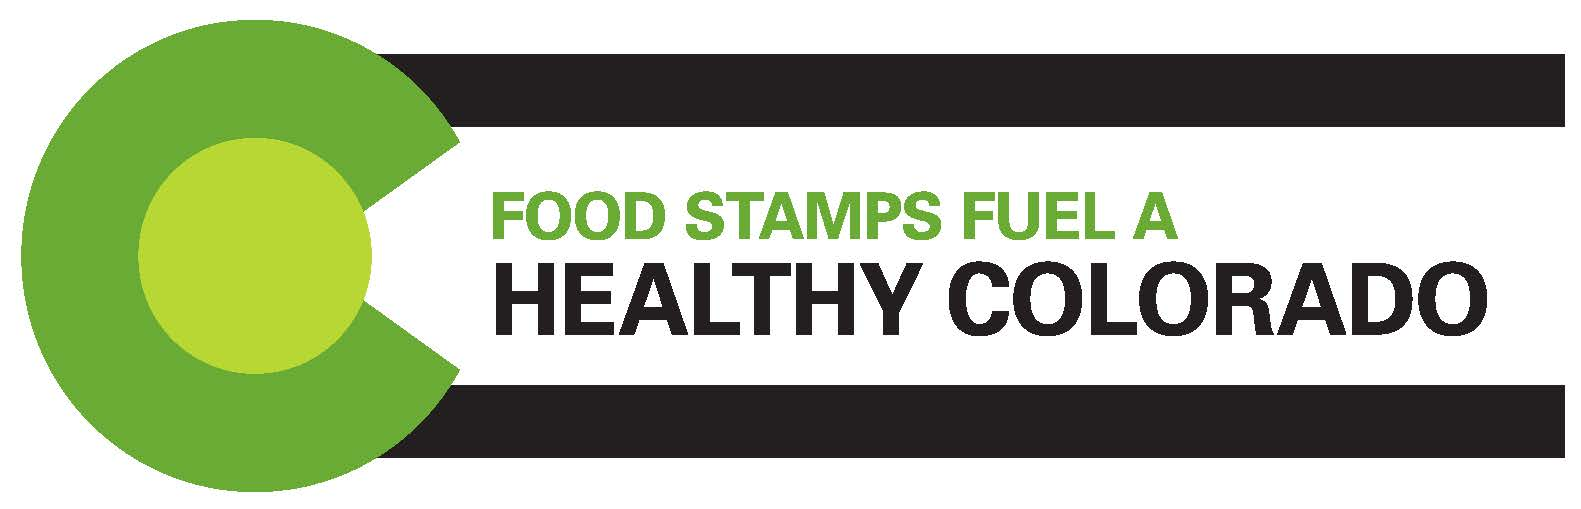 Food-Stamps-Fuel-Healthy-CO